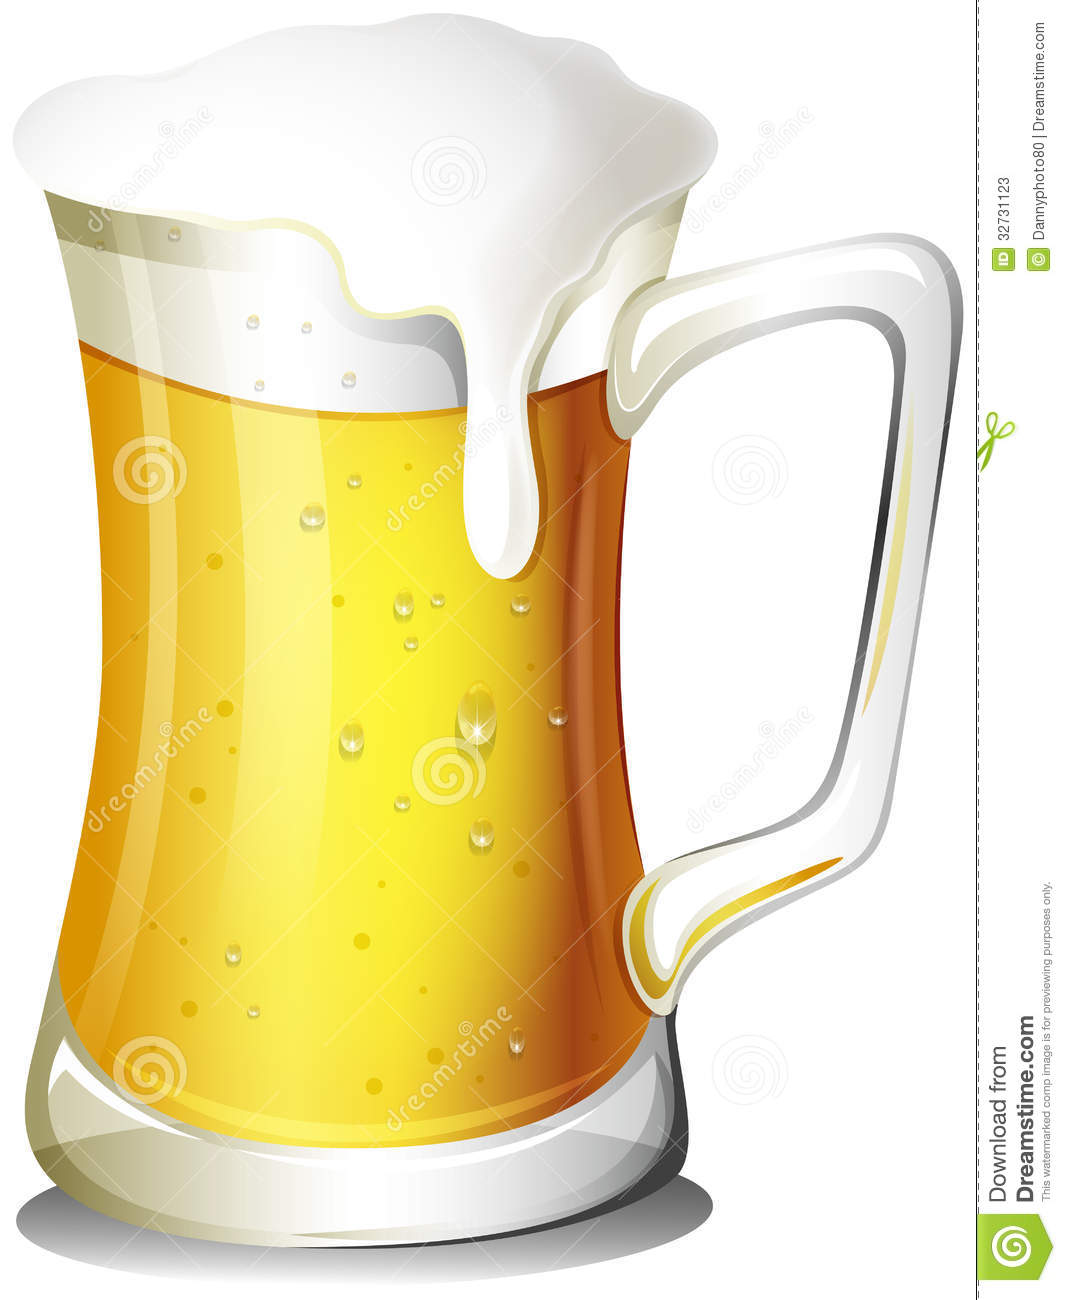 beer stein clipart free - photo #42